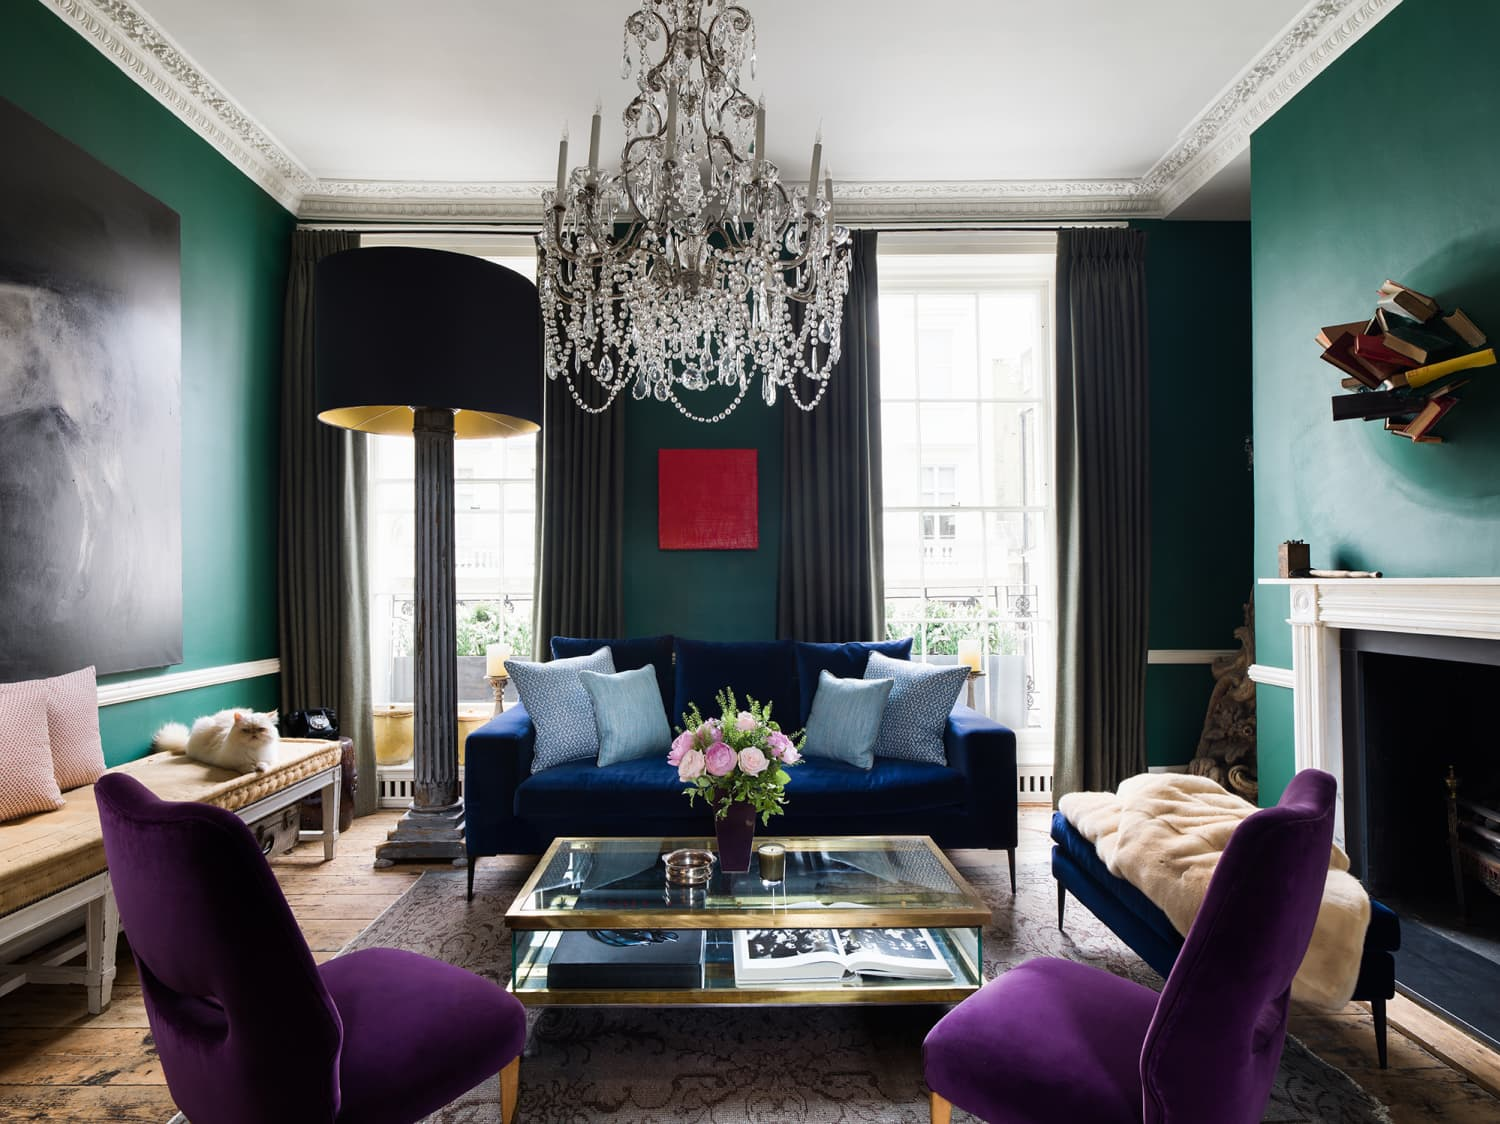 A Renovated Home in London Is Full of Stunning Color Contrasts